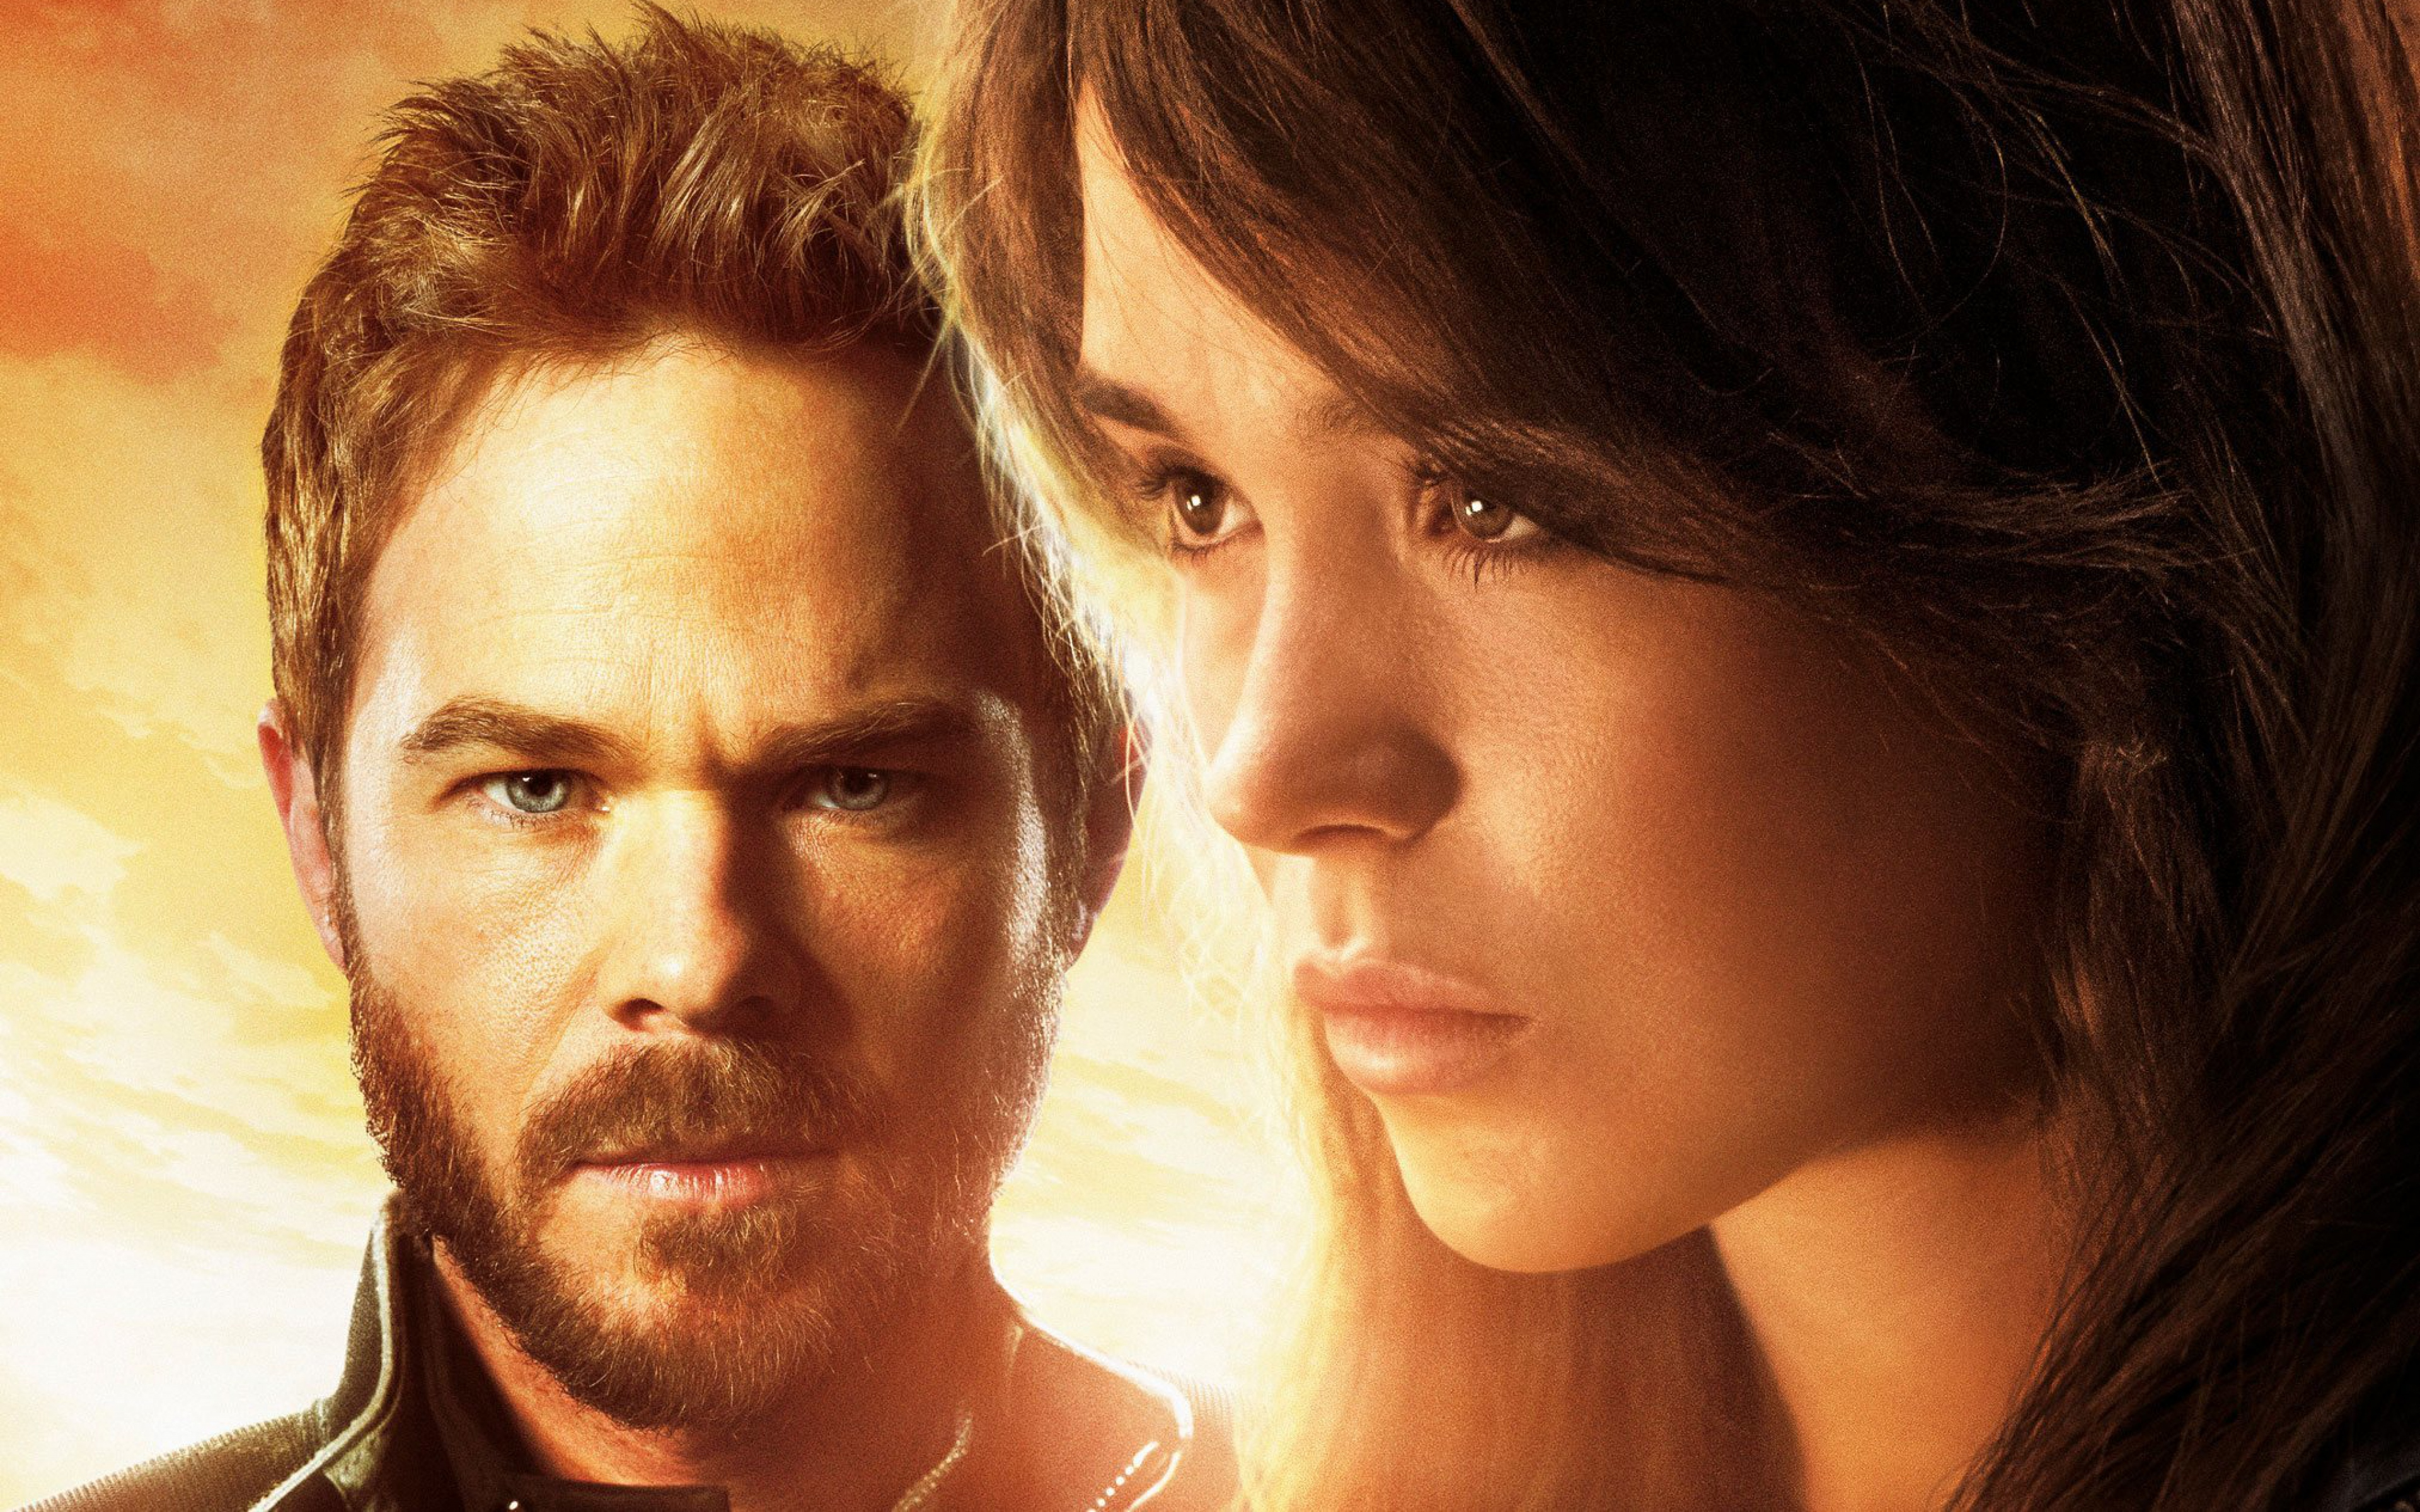 3840x2400 - Shawn Ashmore Wallpapers 18